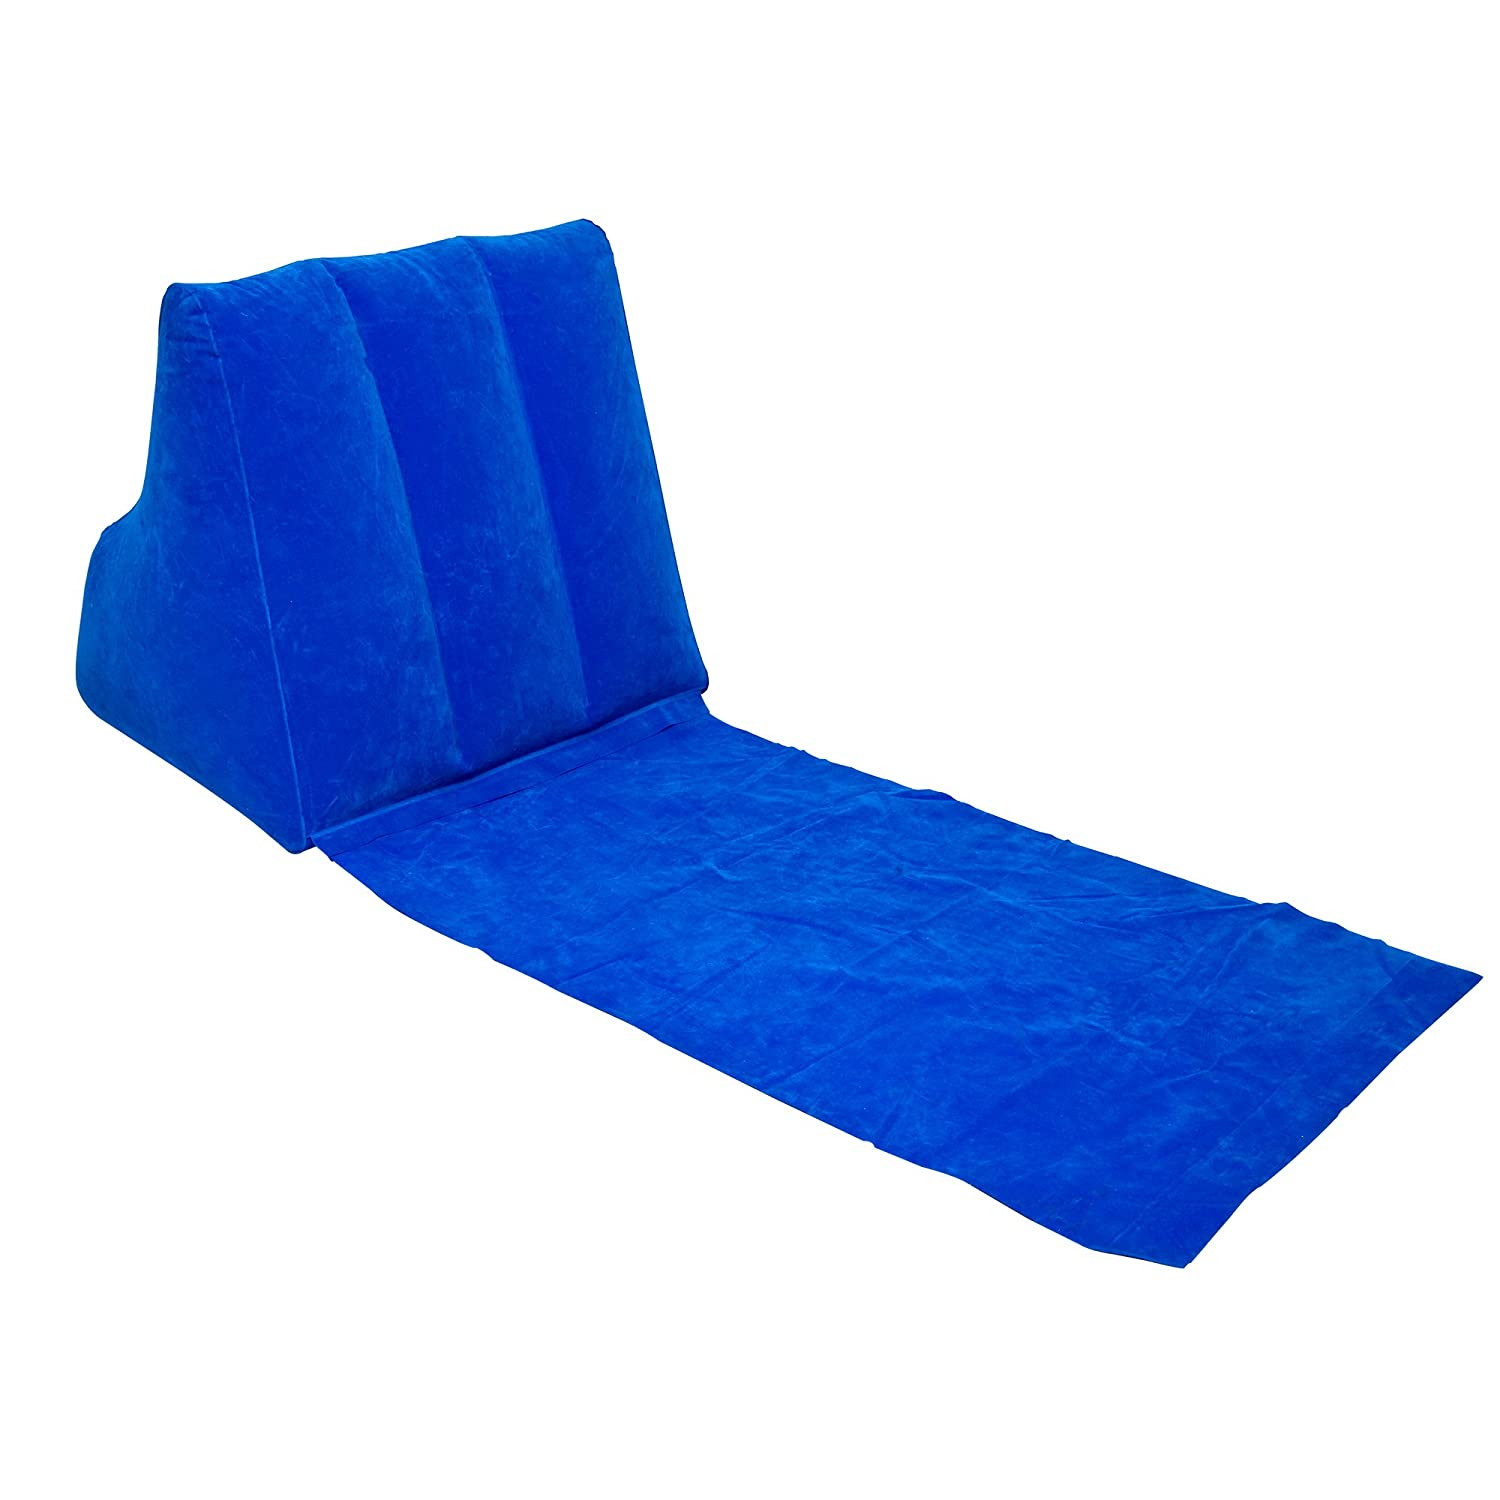 WICKED WEDGE Inflatable Beach Festival Camping Lounger